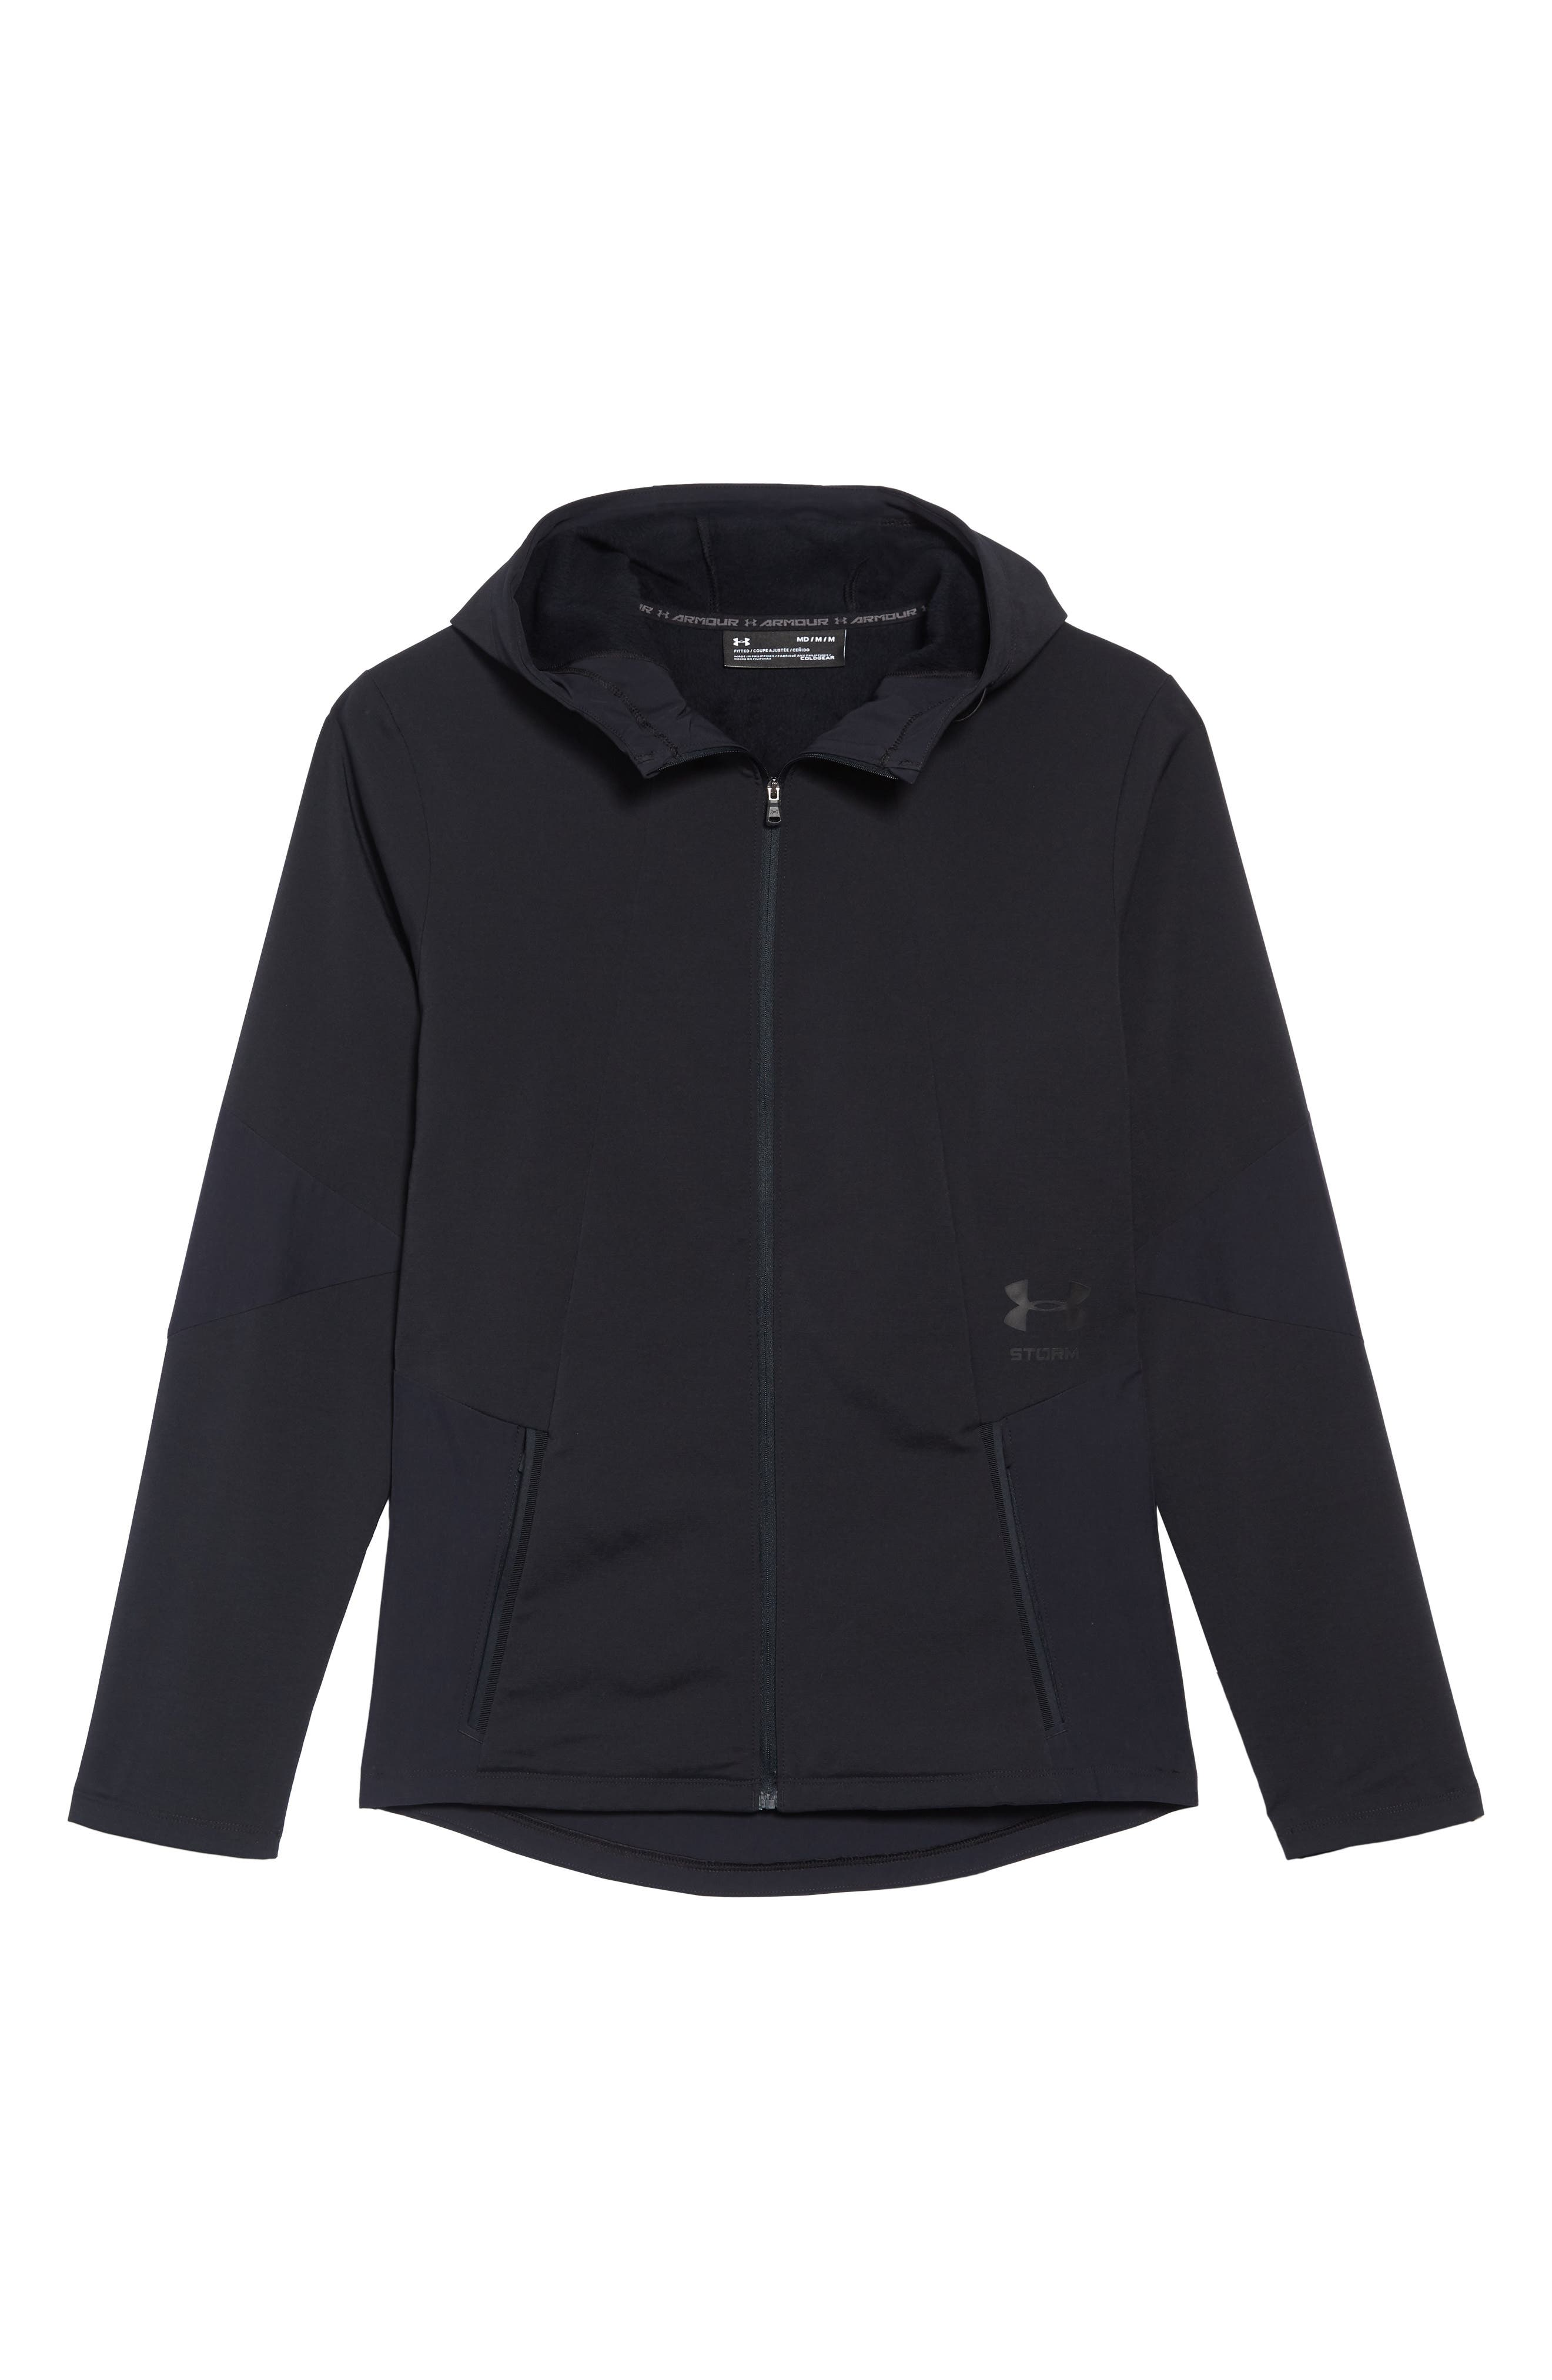 Under Armour Storm Cyclone Water Repellent Hooded Jacket, Black